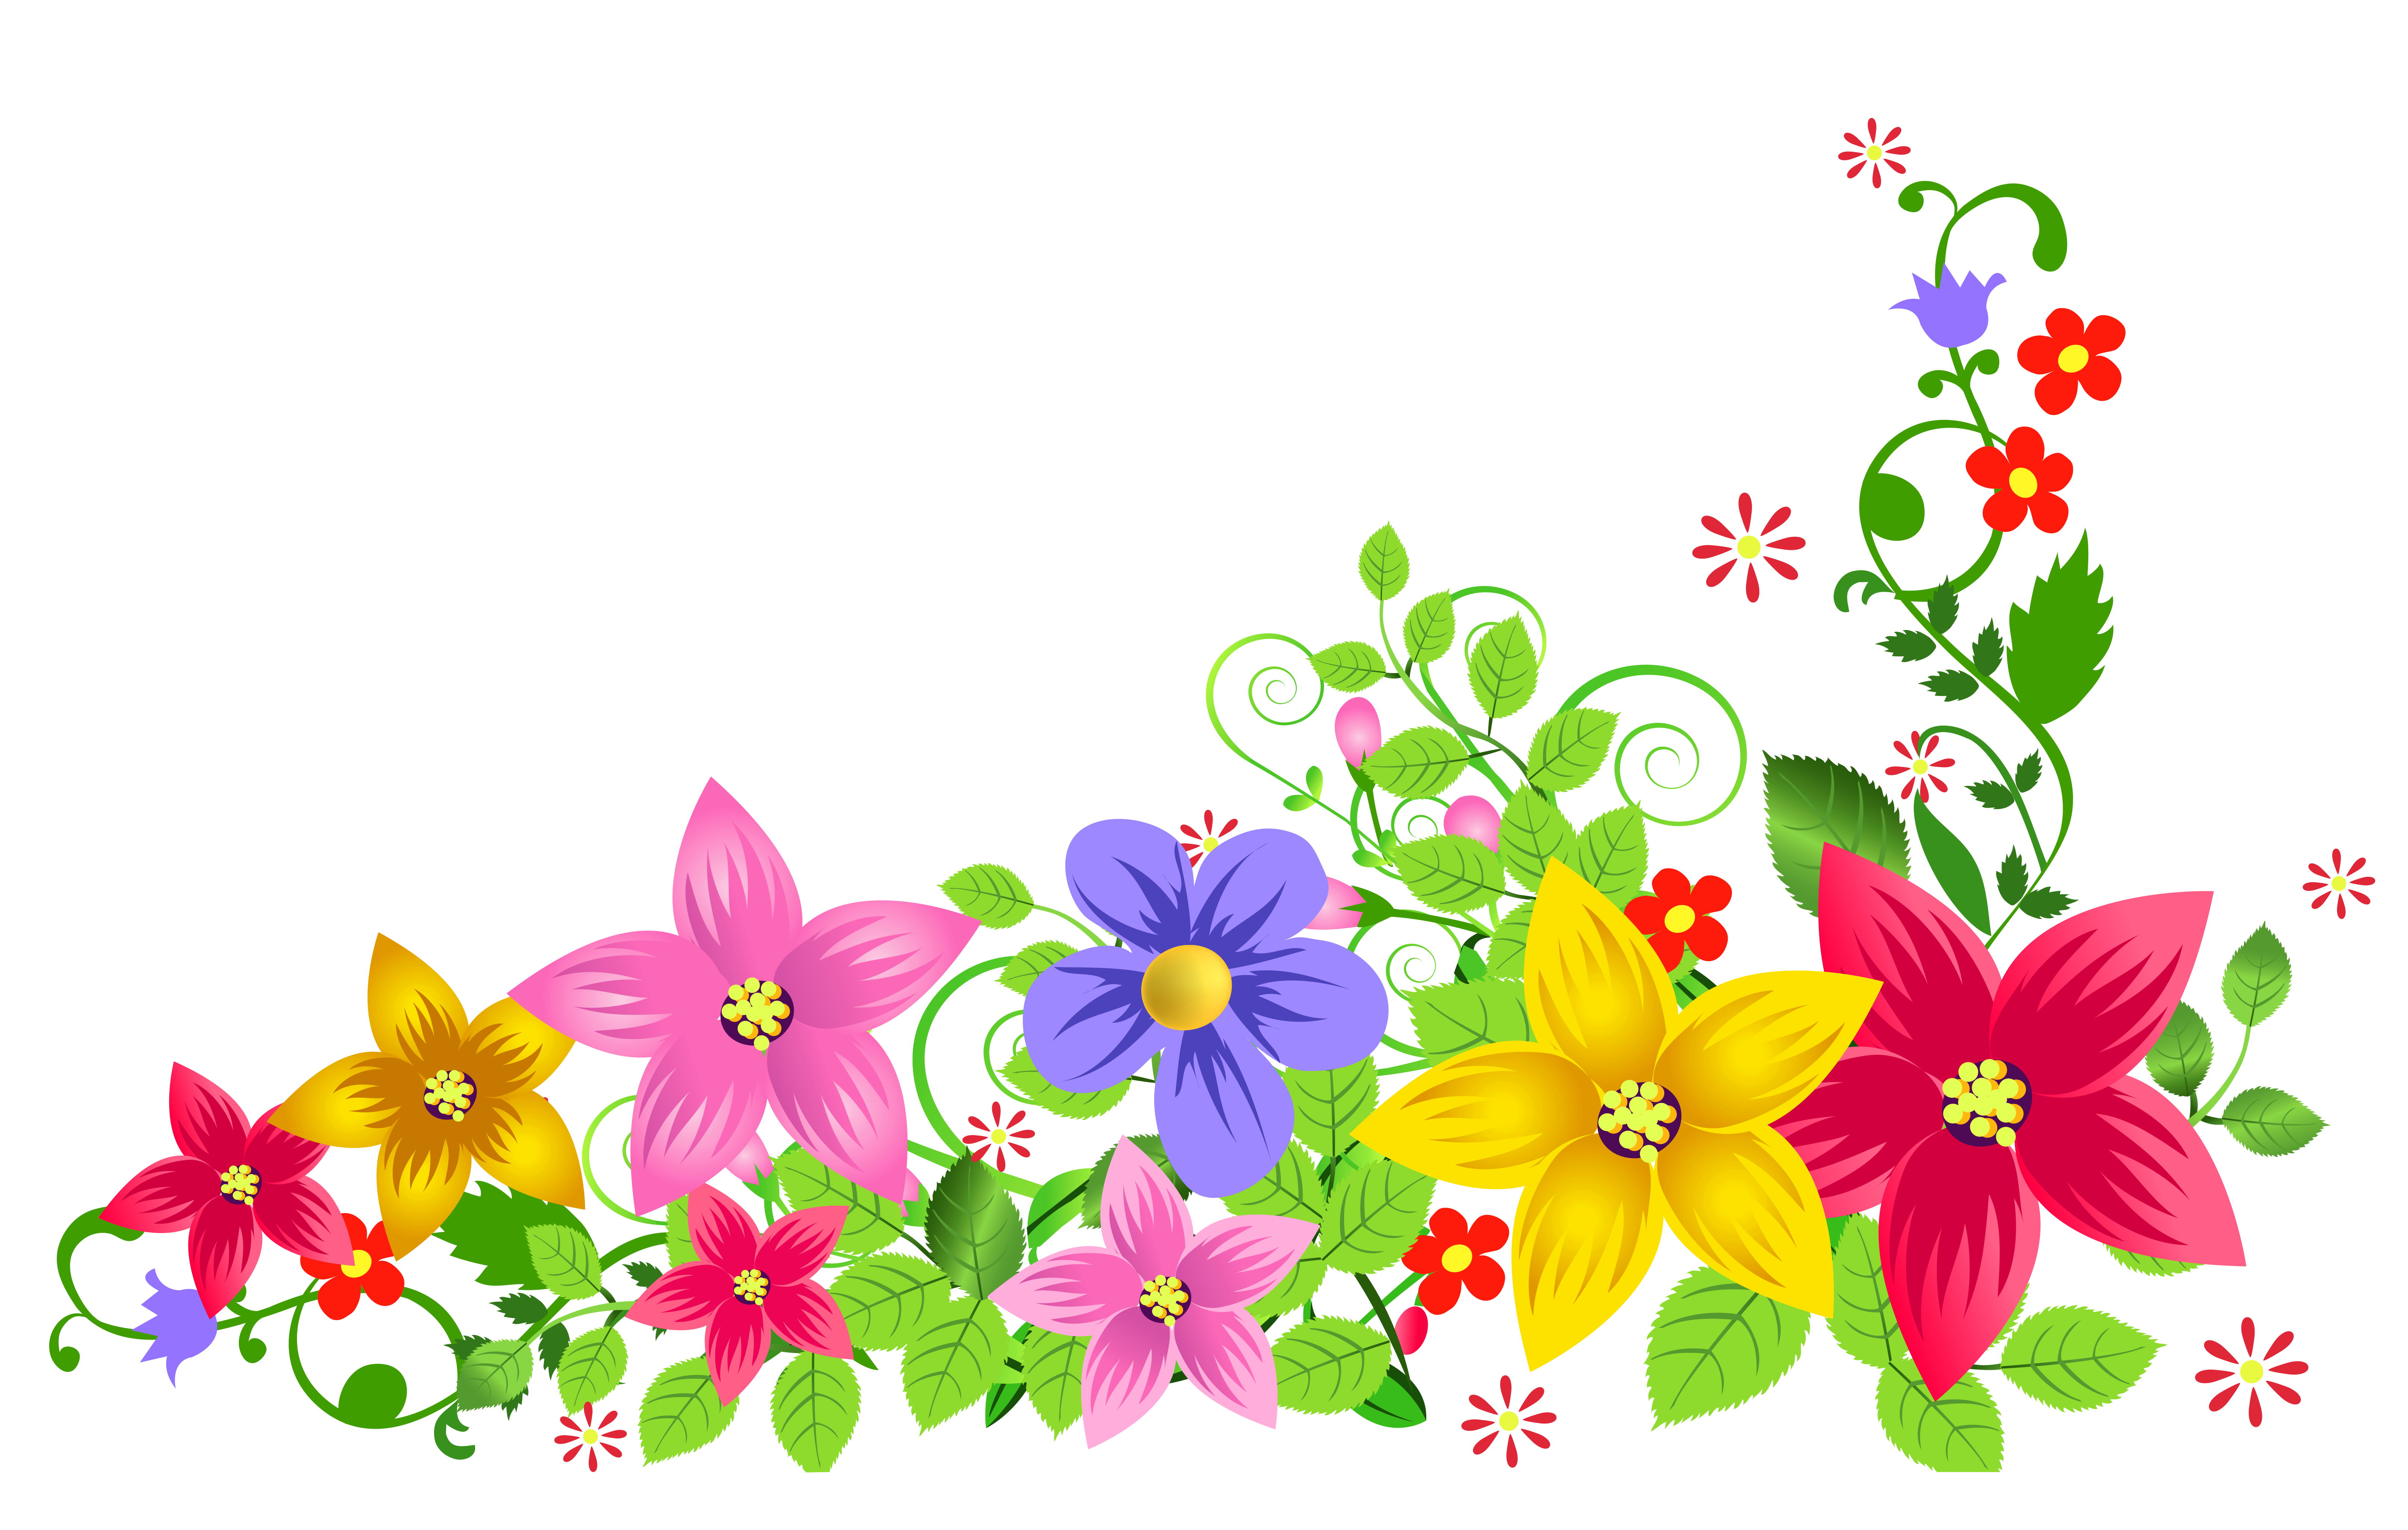 Hd transparent clipart images royalty free stock Flower HD PNG Transparent Flower HD.PNG Images. | PlusPNG royalty free stock